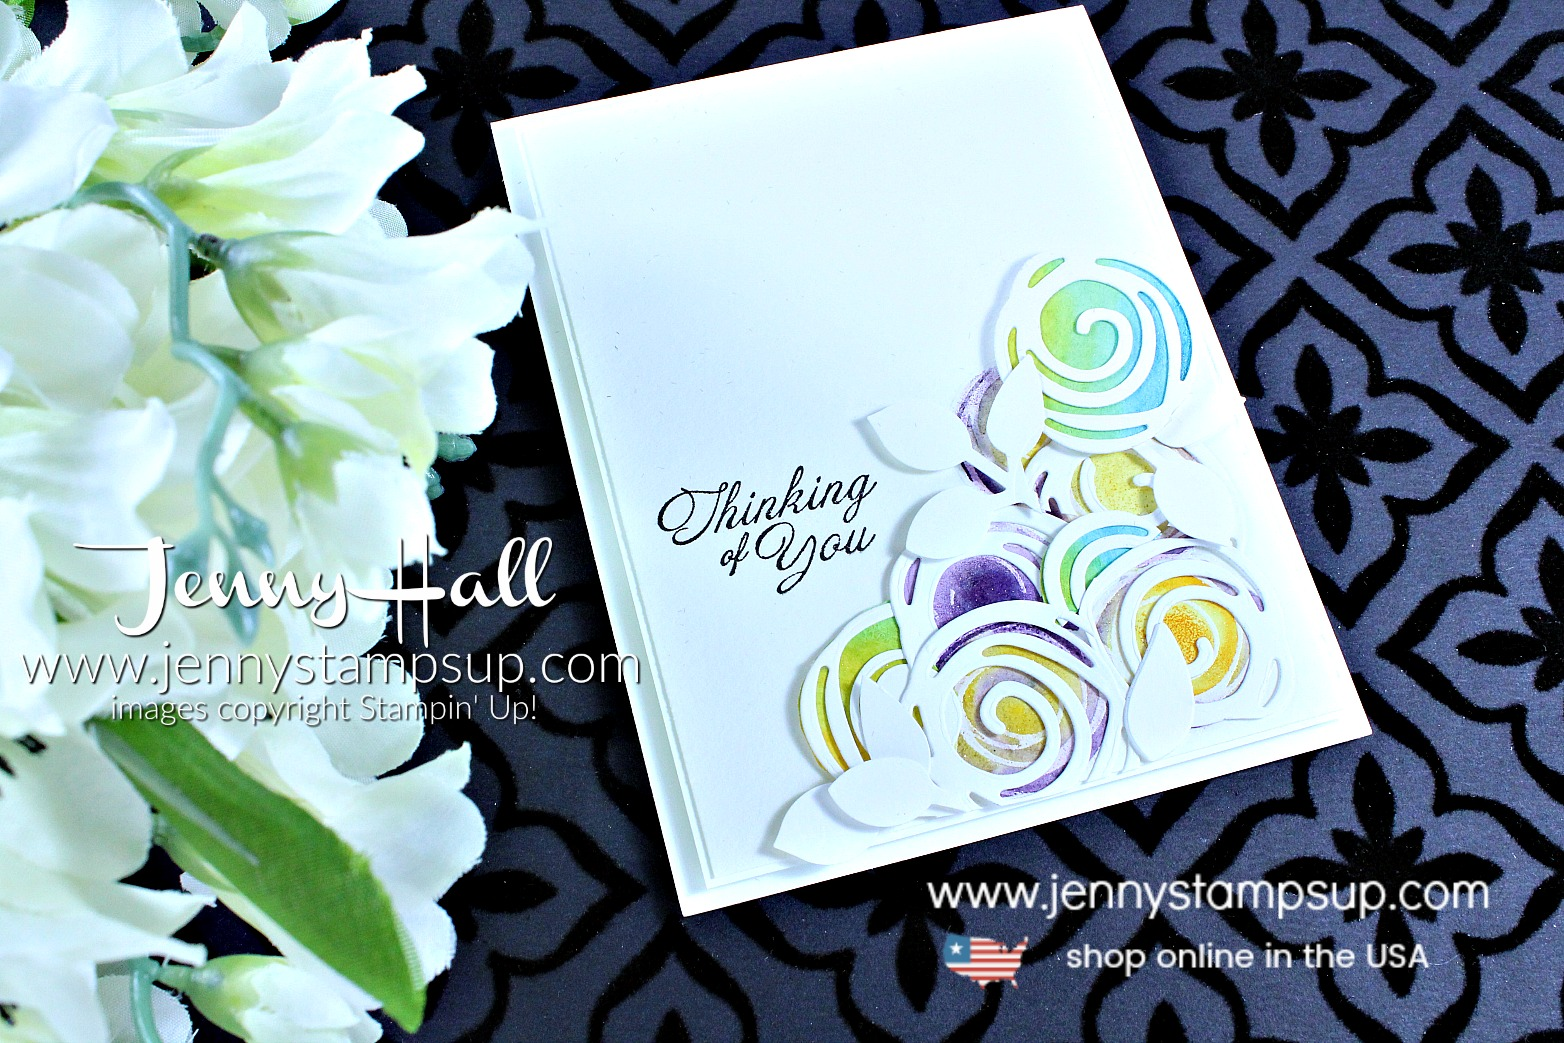 Swirly Flowers card created by Jenny Hall at www.jennystampsup.com for #cardmaking #cascards #stamping #stampinup #swirlyscribbles #abstractart #heartfeltblooms #cleanandsimplecard #watercolorpainting #jennyhall #jennyhalldesign #jennyhallstampinup #jennystampsup #youtuber